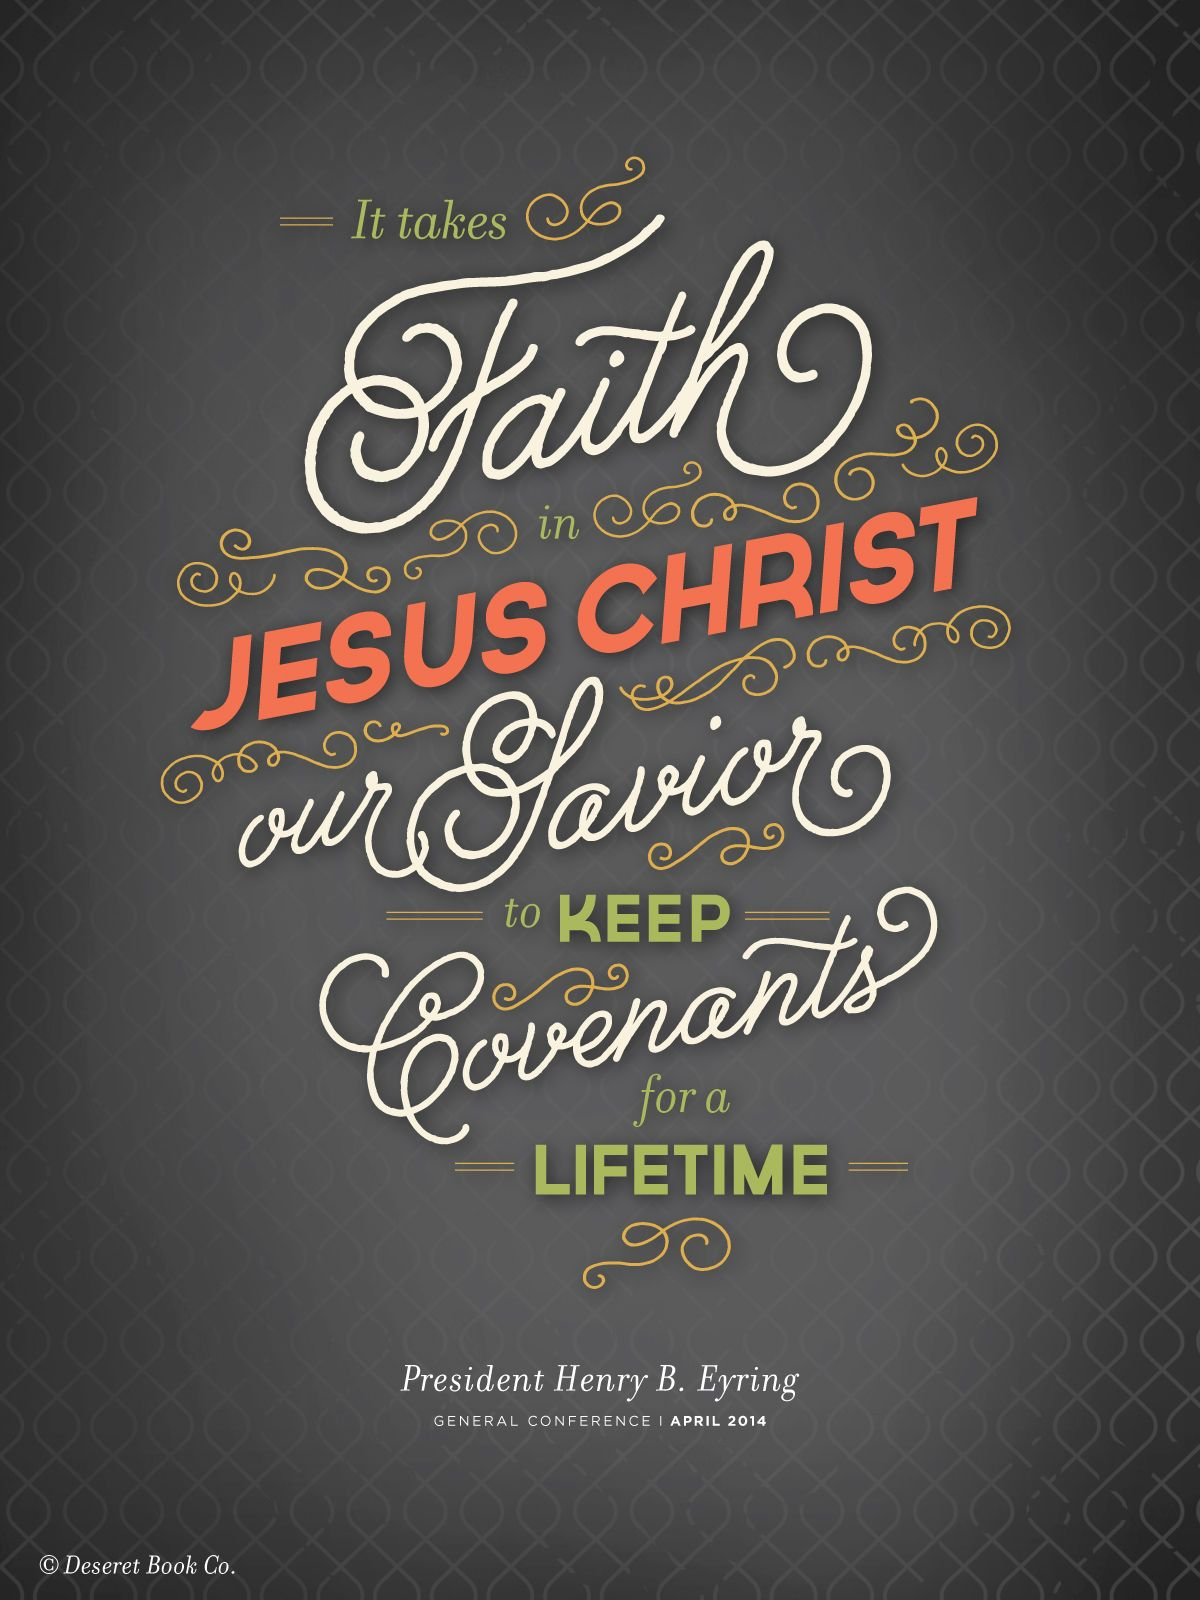 """It takes faith in Jesus Christ our Saviour to keep covenants for a lifetime."" ~ President Henry B. Eyring #ldsconf #faith"